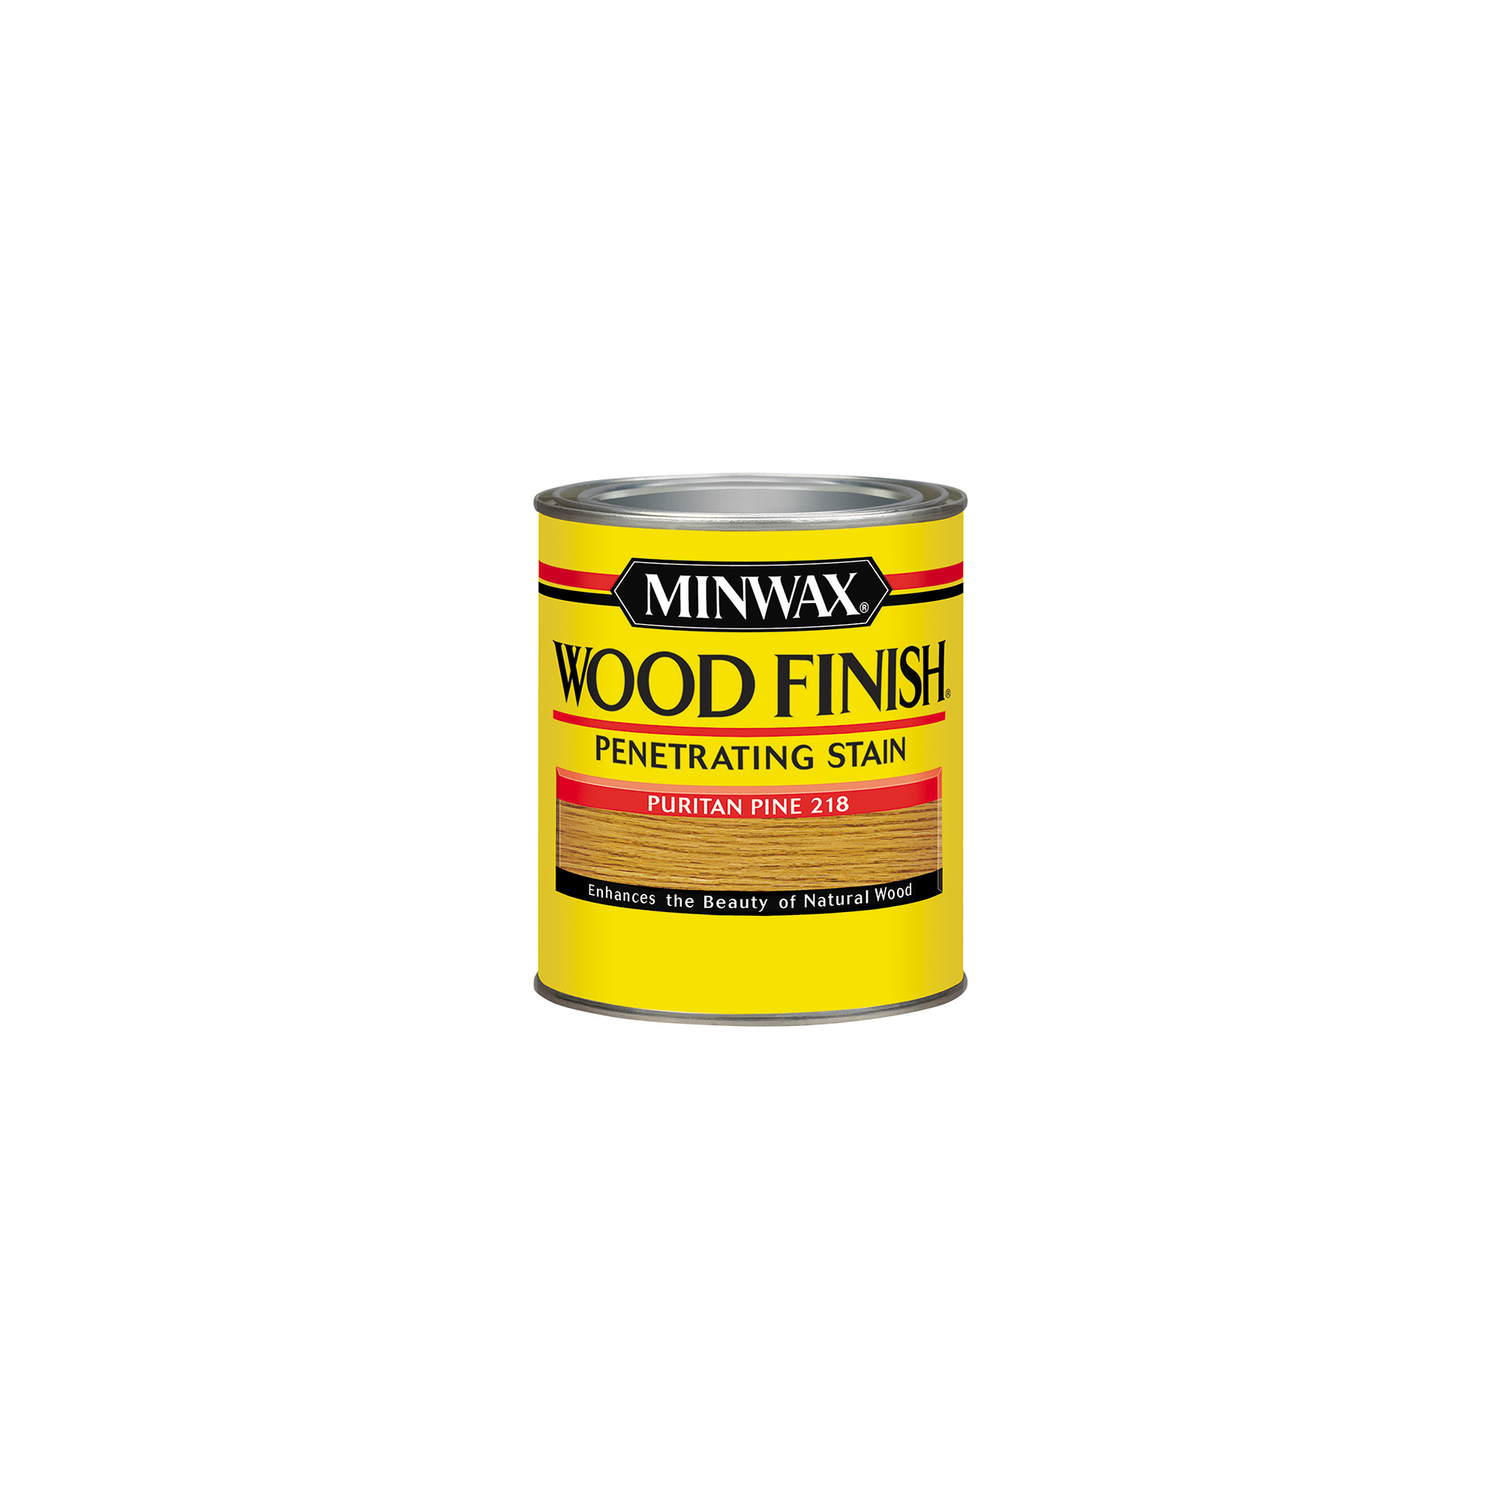 Minwax  Wood Finish  Semi-Transparent  Puritan Pine  Oil-Based  Oil  Wood Stain  0.5 pt.